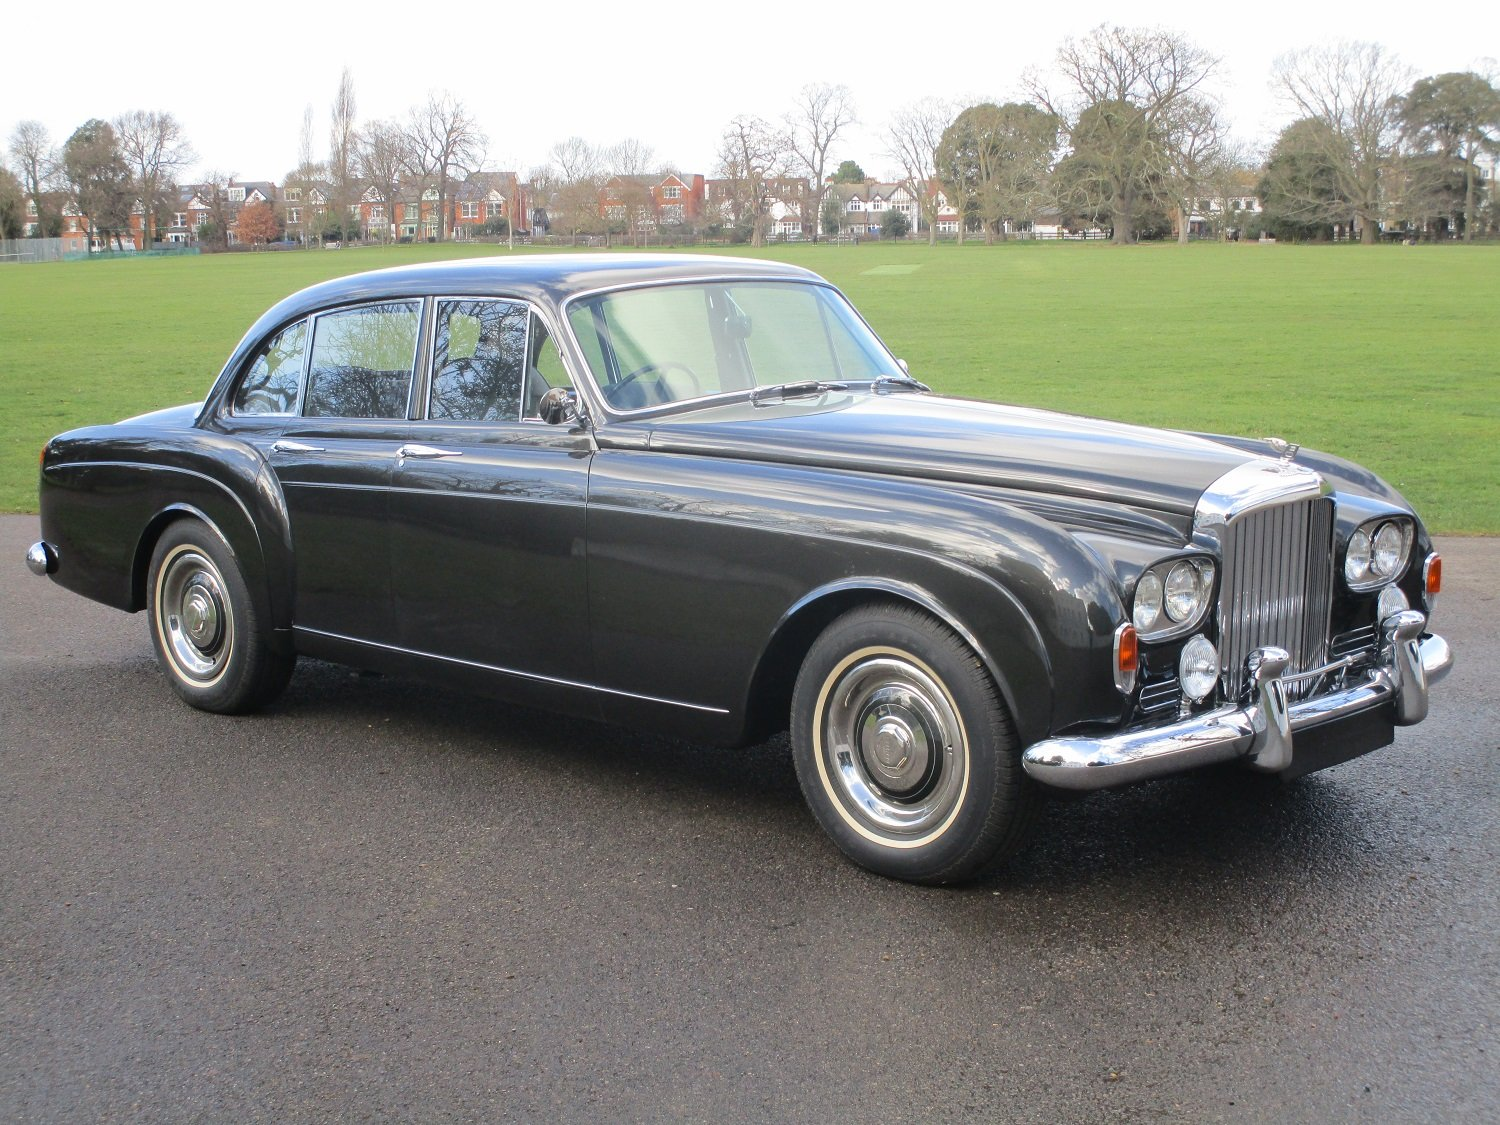 1962 Bentley S3 Continental Six Light Flying Spur by H.J.Mulliner For Sale (picture 1 of 1)